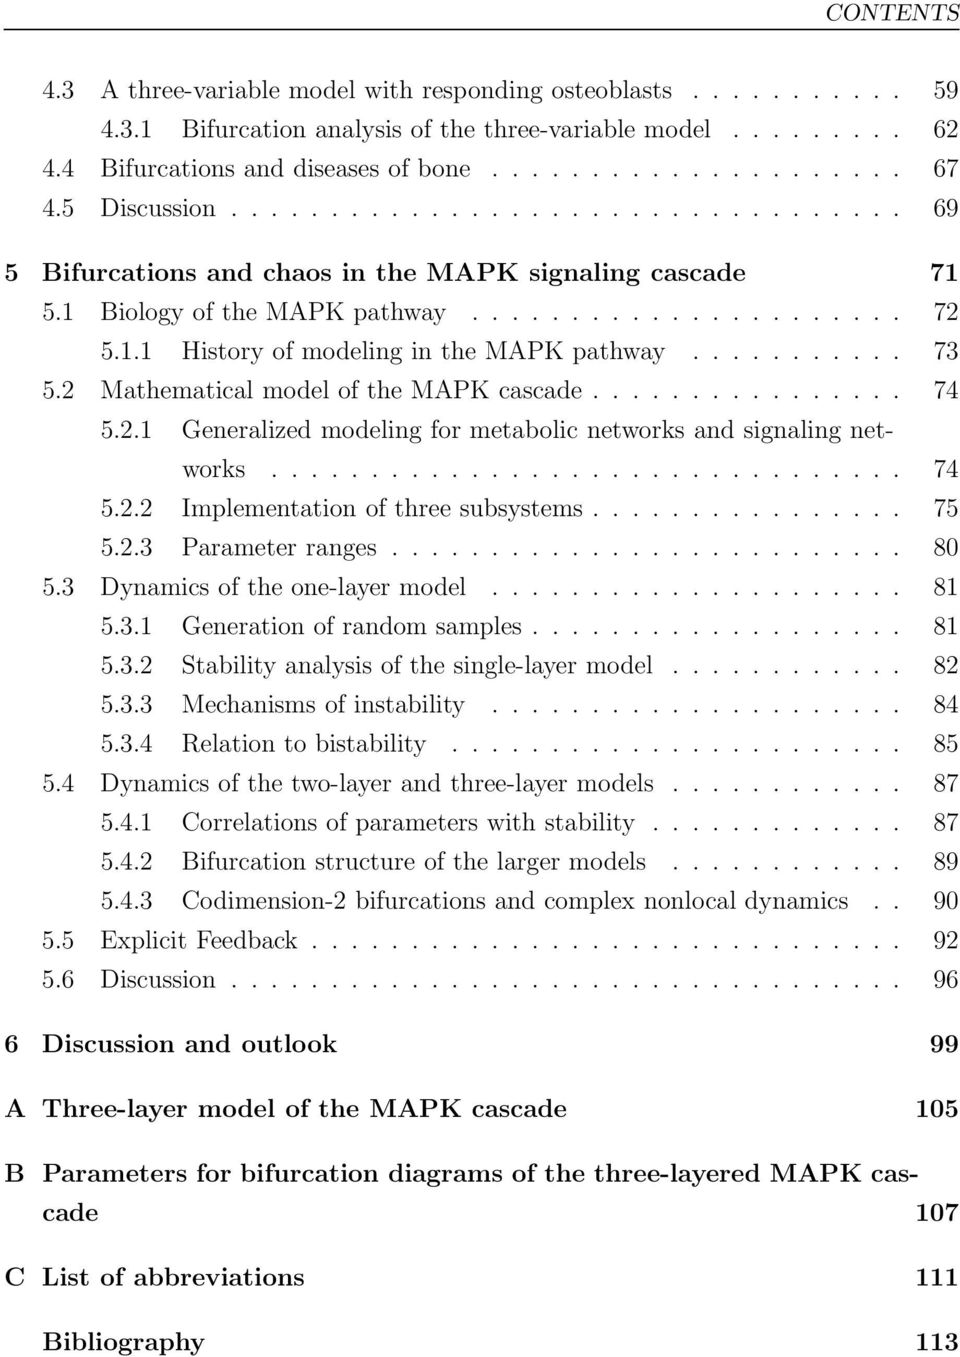 .......... 73 5.2 Mathematical model of the MAPK cascade................ 74 5.2.1 Generalized modeling for metabolic networks and signaling networks................................ 74 5.2.2 Implementation of three subsystems.